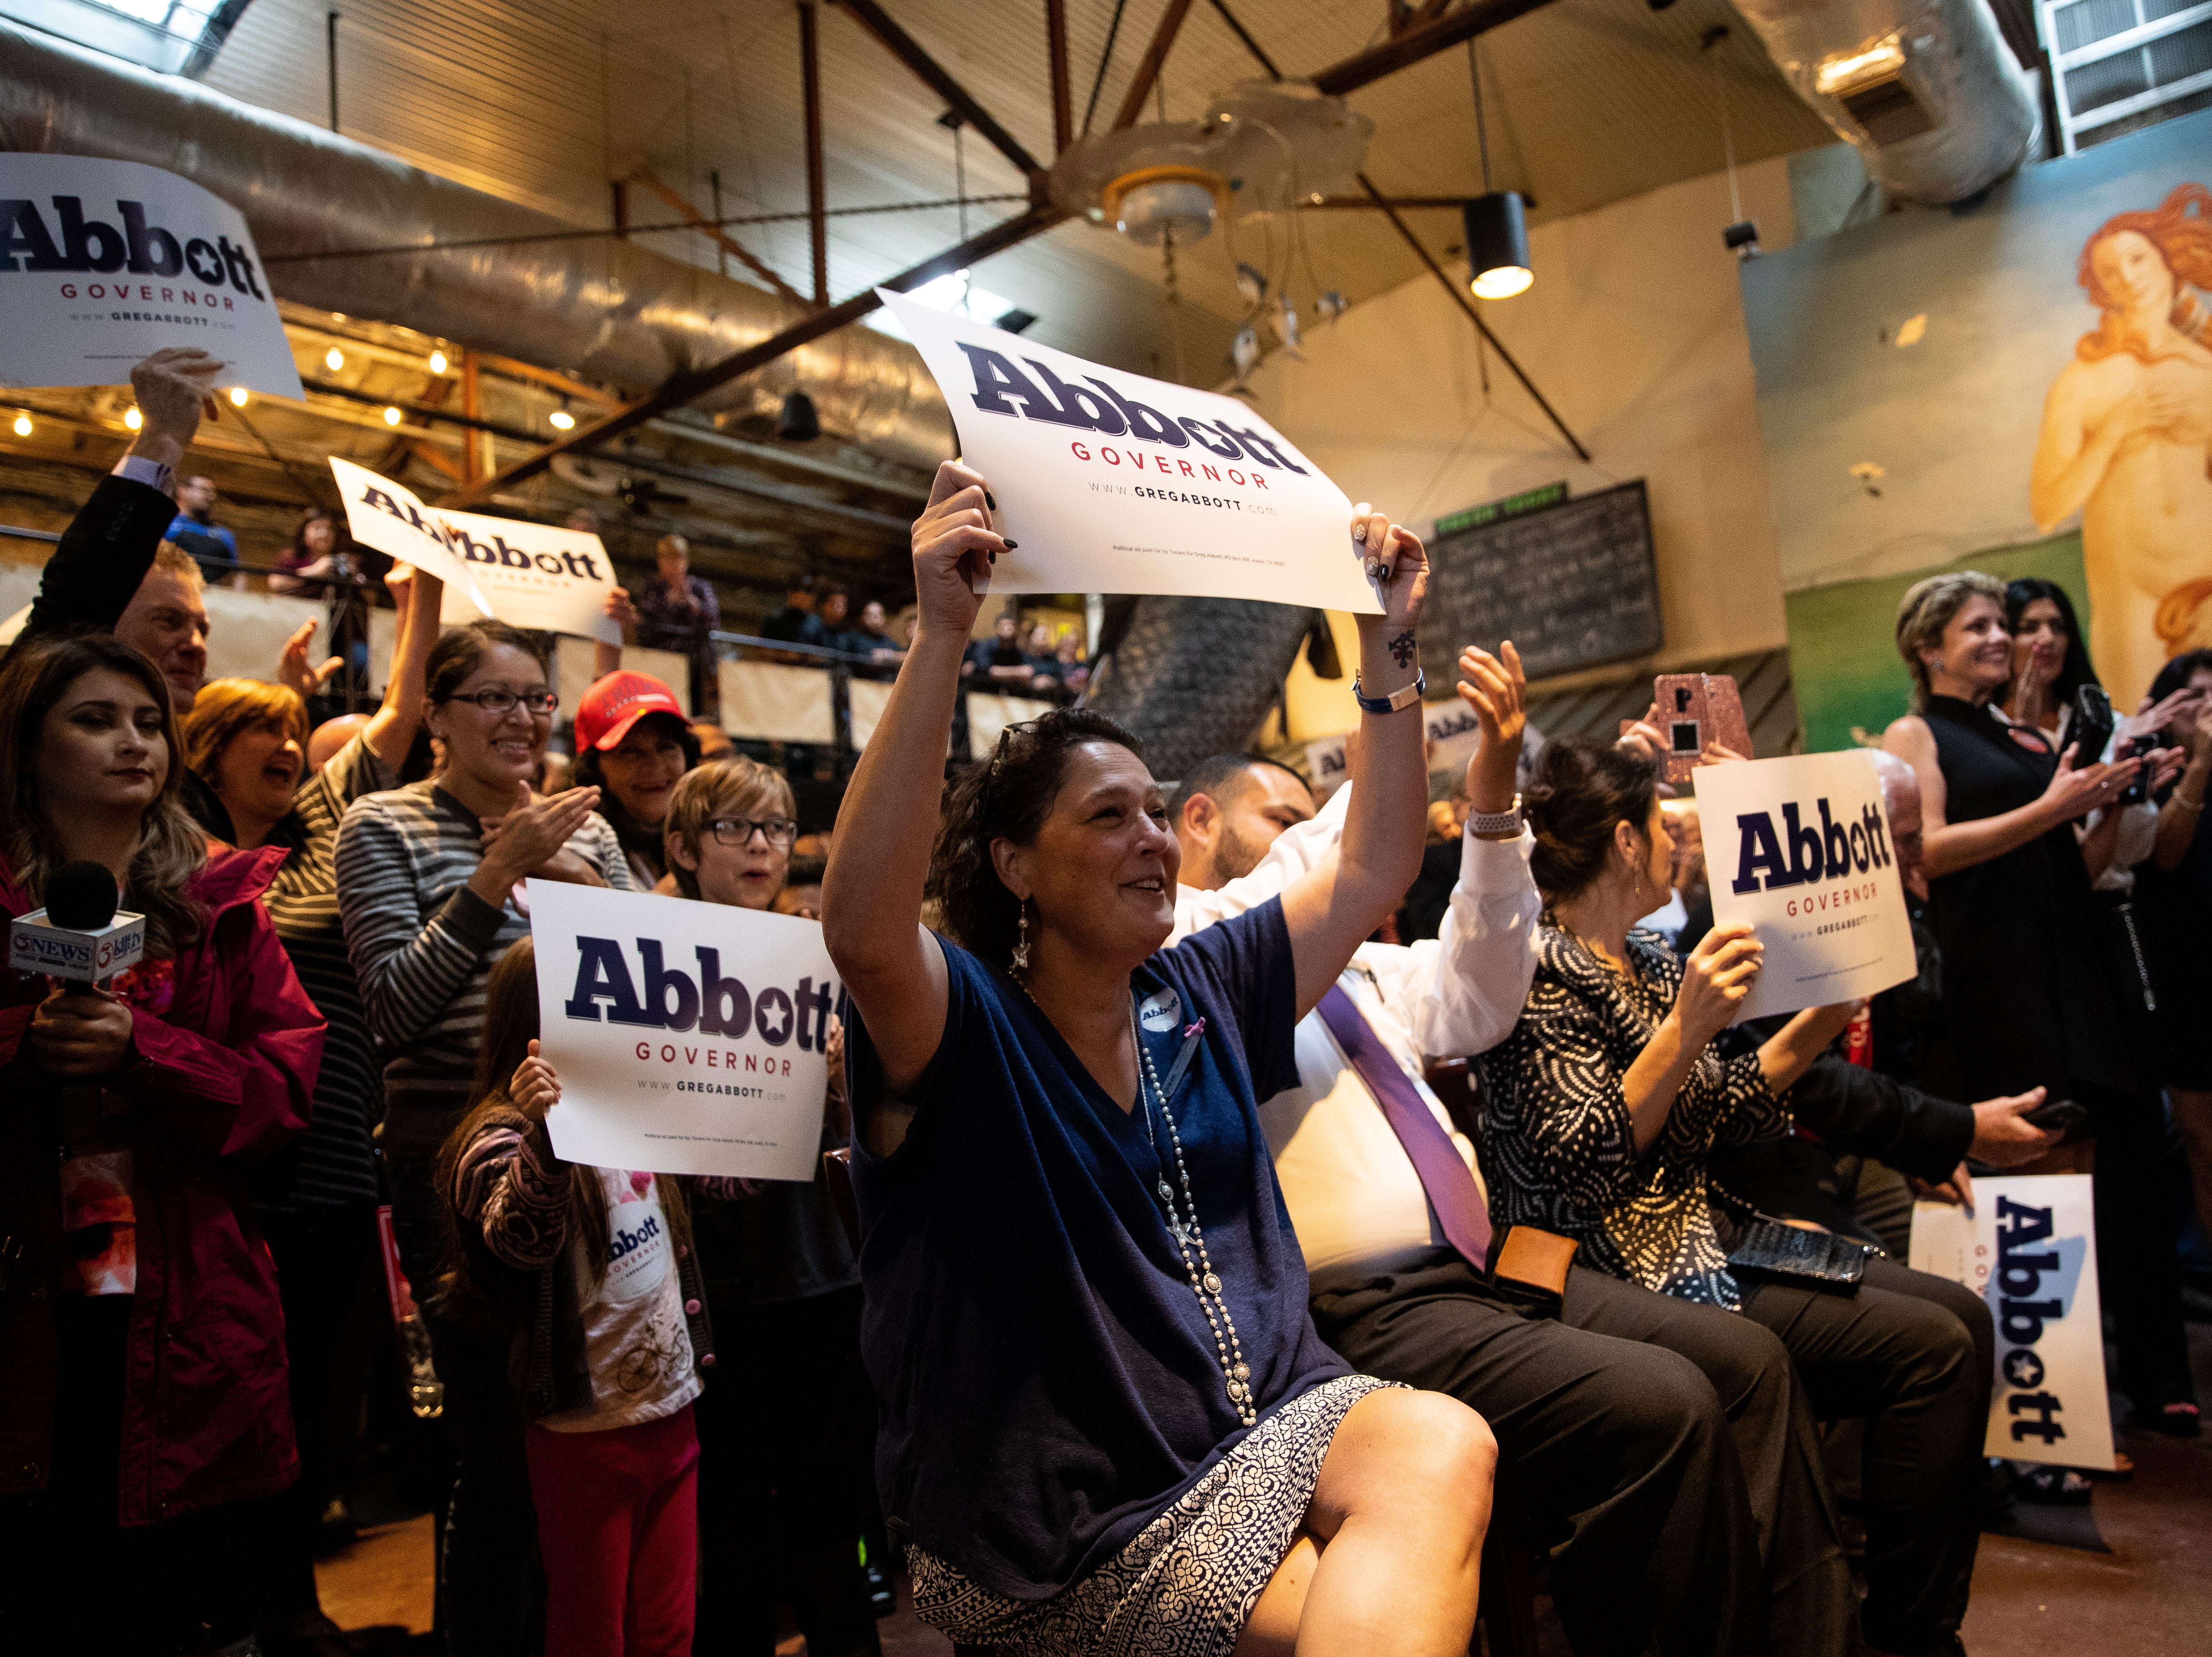 People cheer for Texas Gov. Greg Abbott as he speaks at a Get Out the Vote stop in Corpus Christi at Water Street Oyster Bar on Thursday, Oct. 25, 2018.